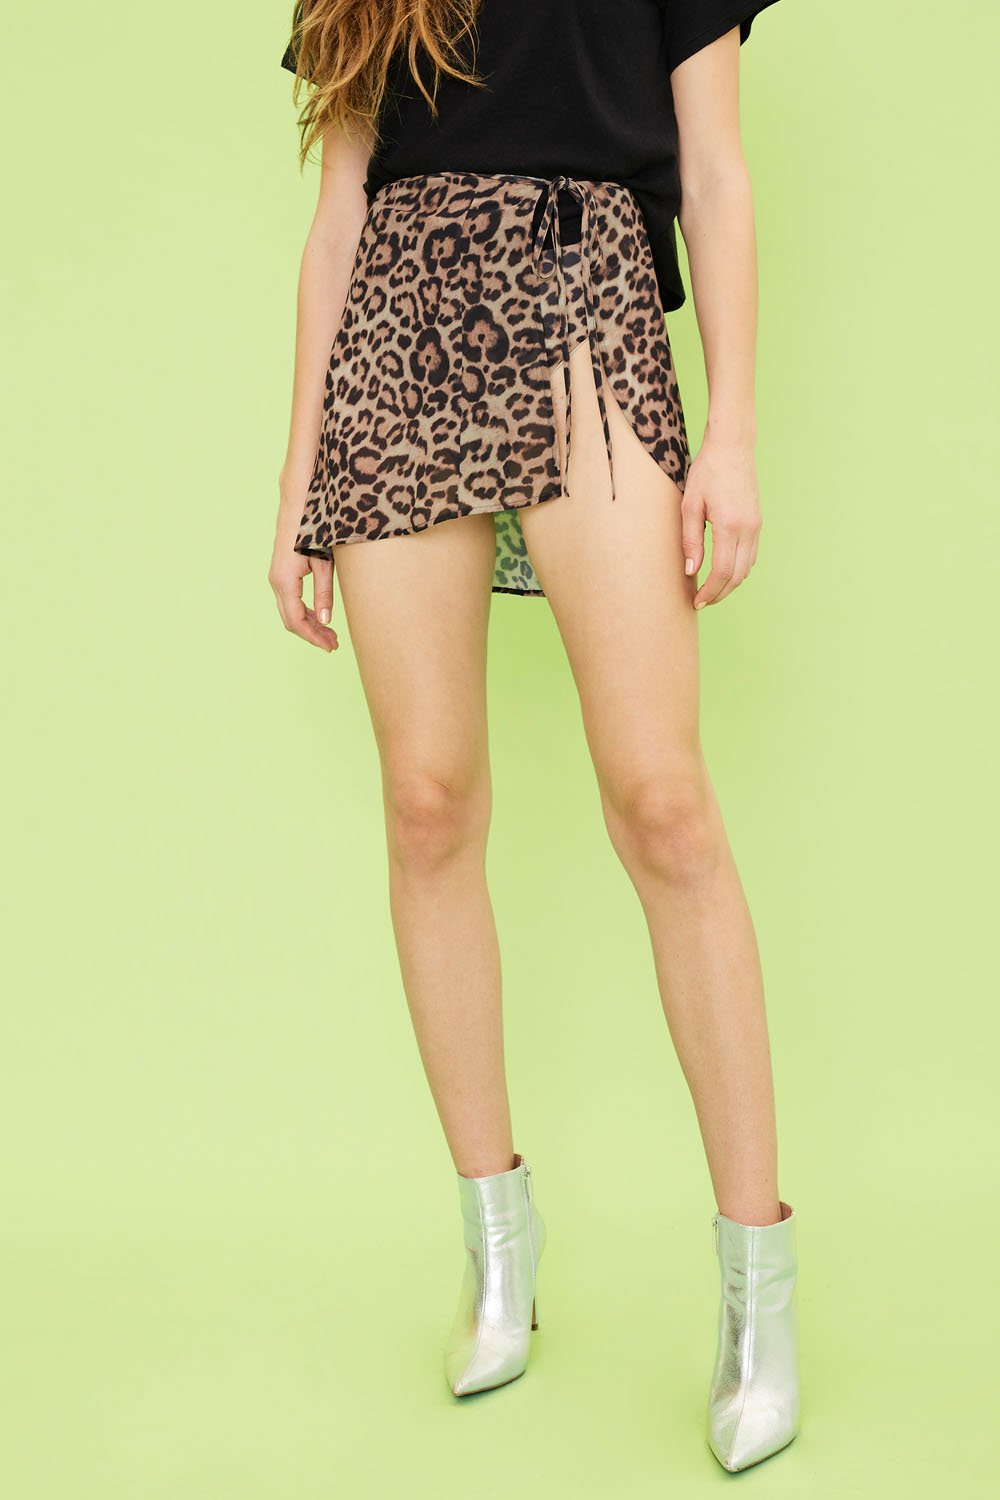 Image of Exotica Wrap Skirt - Leopard